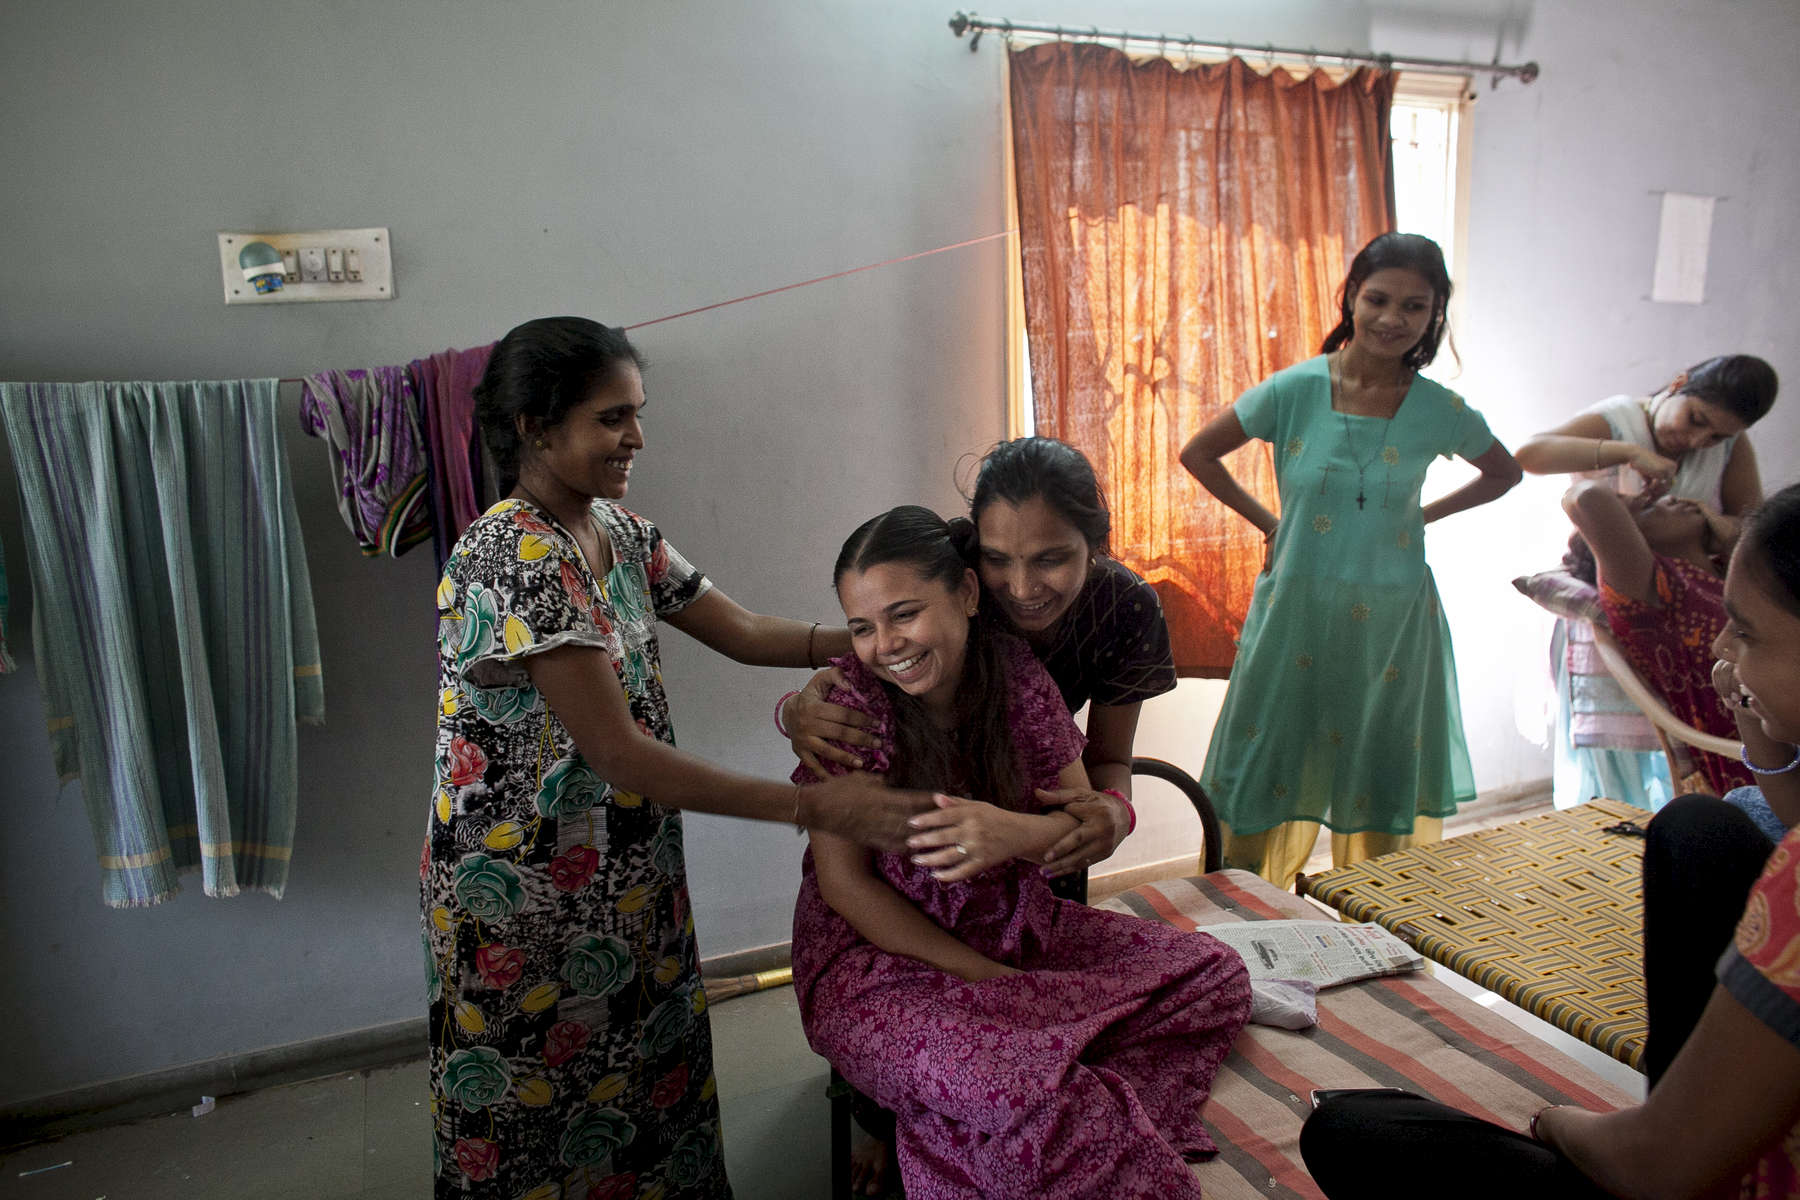 26-year-old Christina Christian, center left, socializes with other surrogate mothers at a dormitory run by Akanksha Clinic, one of the most organized clinics in the surrogacy business. Christian is carrying a child for American parents and says she plans to use the money she earns to purchase a house. The dormitory in Anand, houses scores of young women, all hired as surrogates for foreign couples.